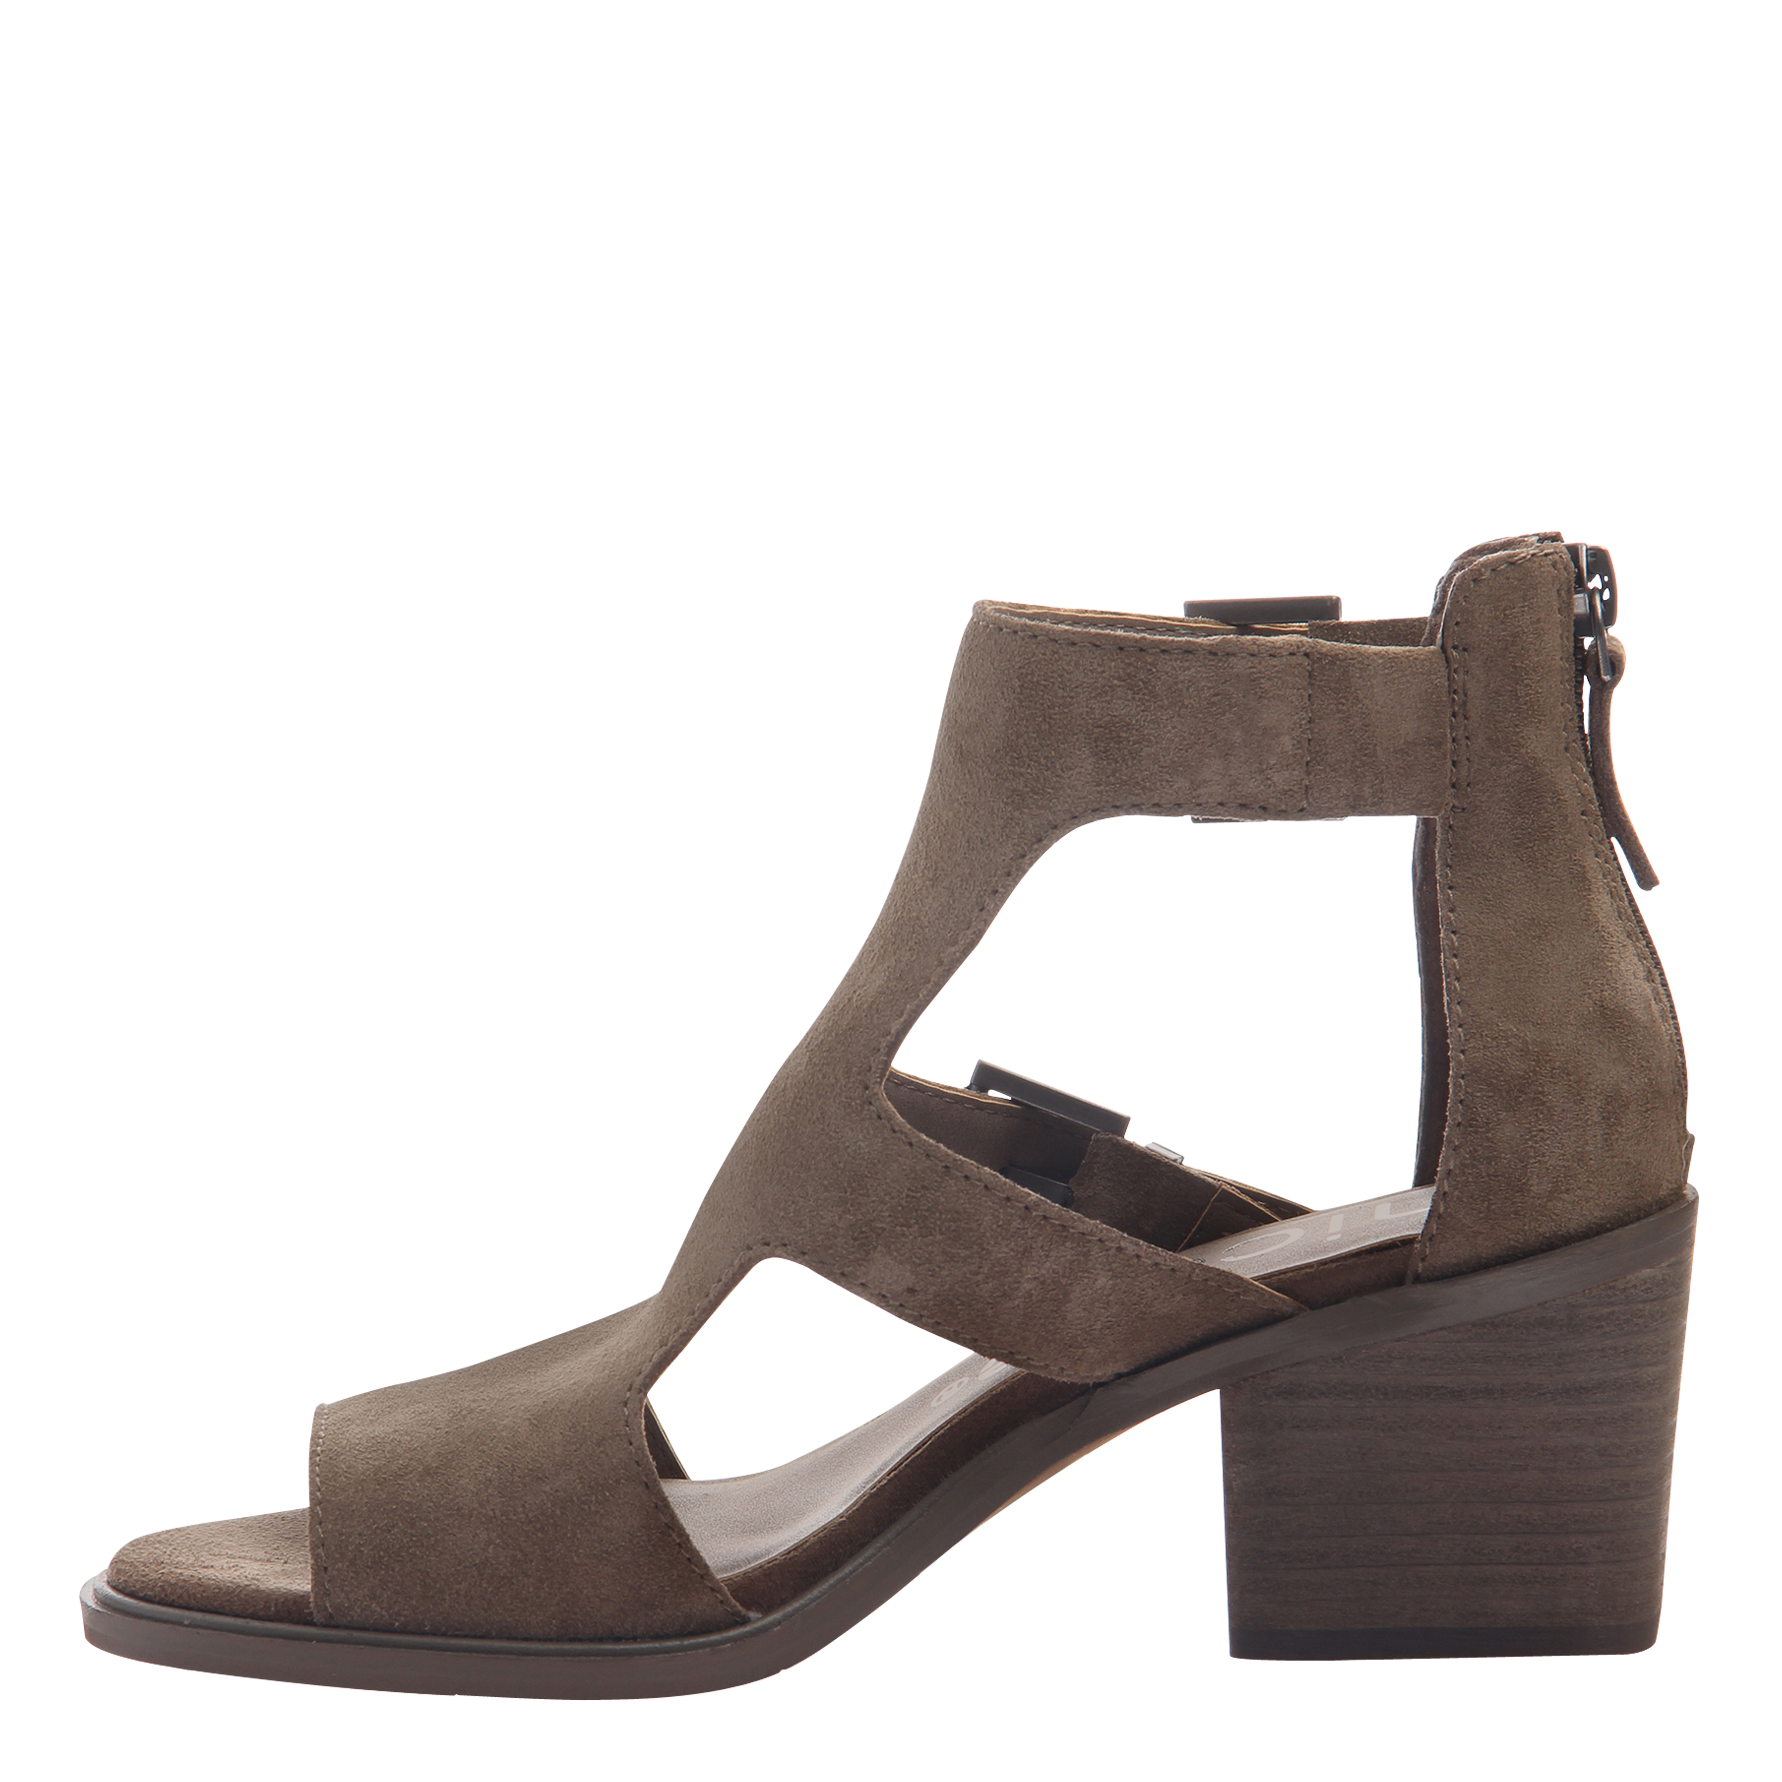 Womens heeled sandals Jahida in otter inside view